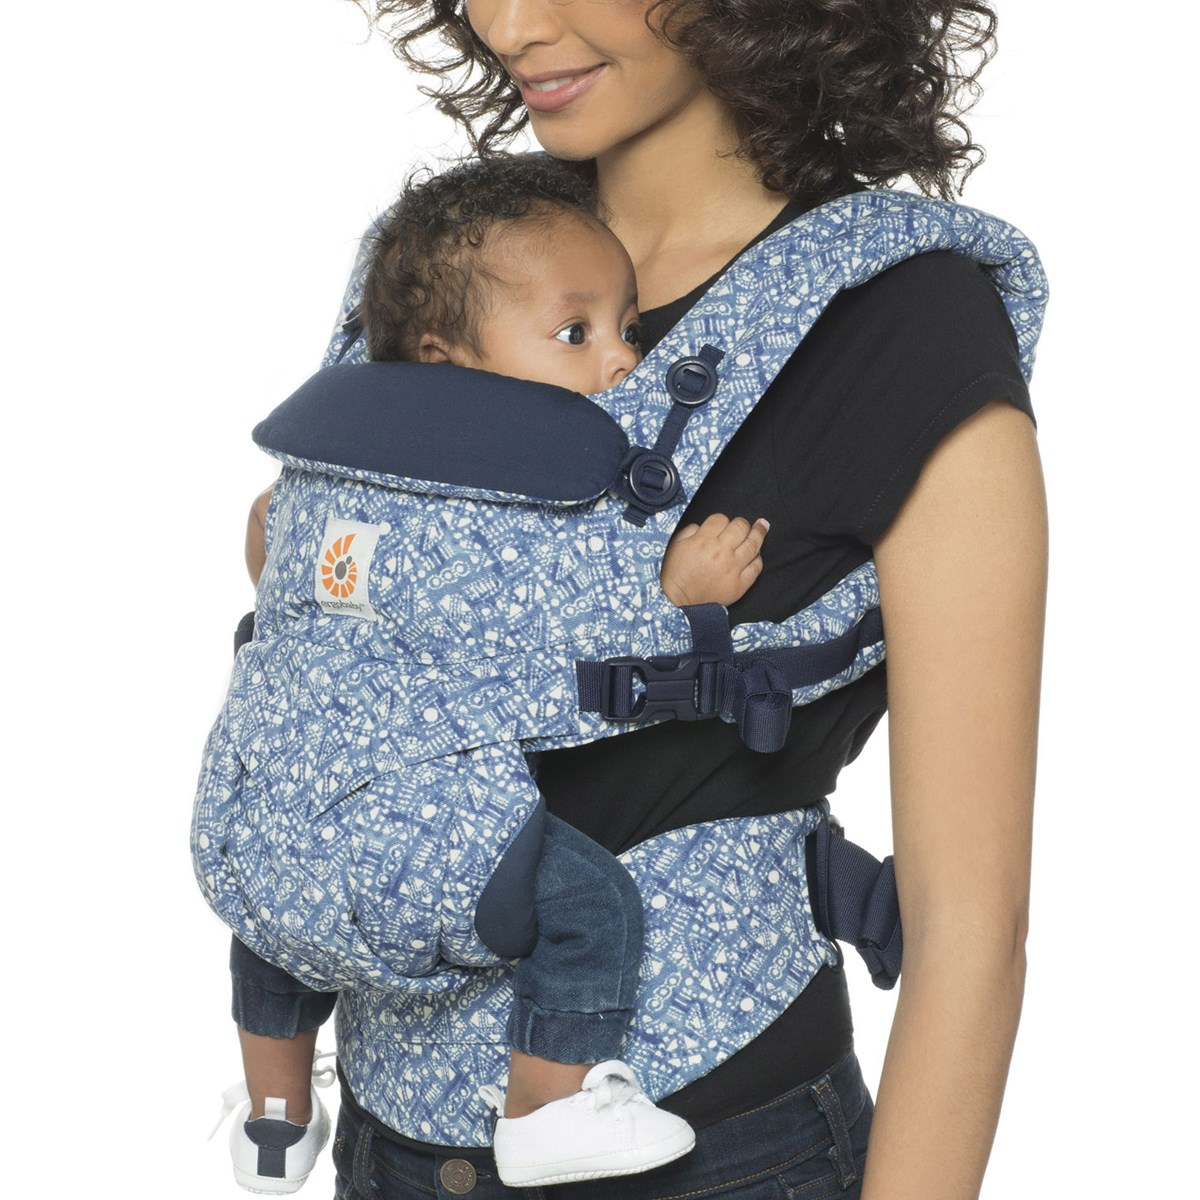 7a7f6109c2d Ergobaby - Omni 360 All-in-One Baby Carrier Batik Indigo - Babyshop.com